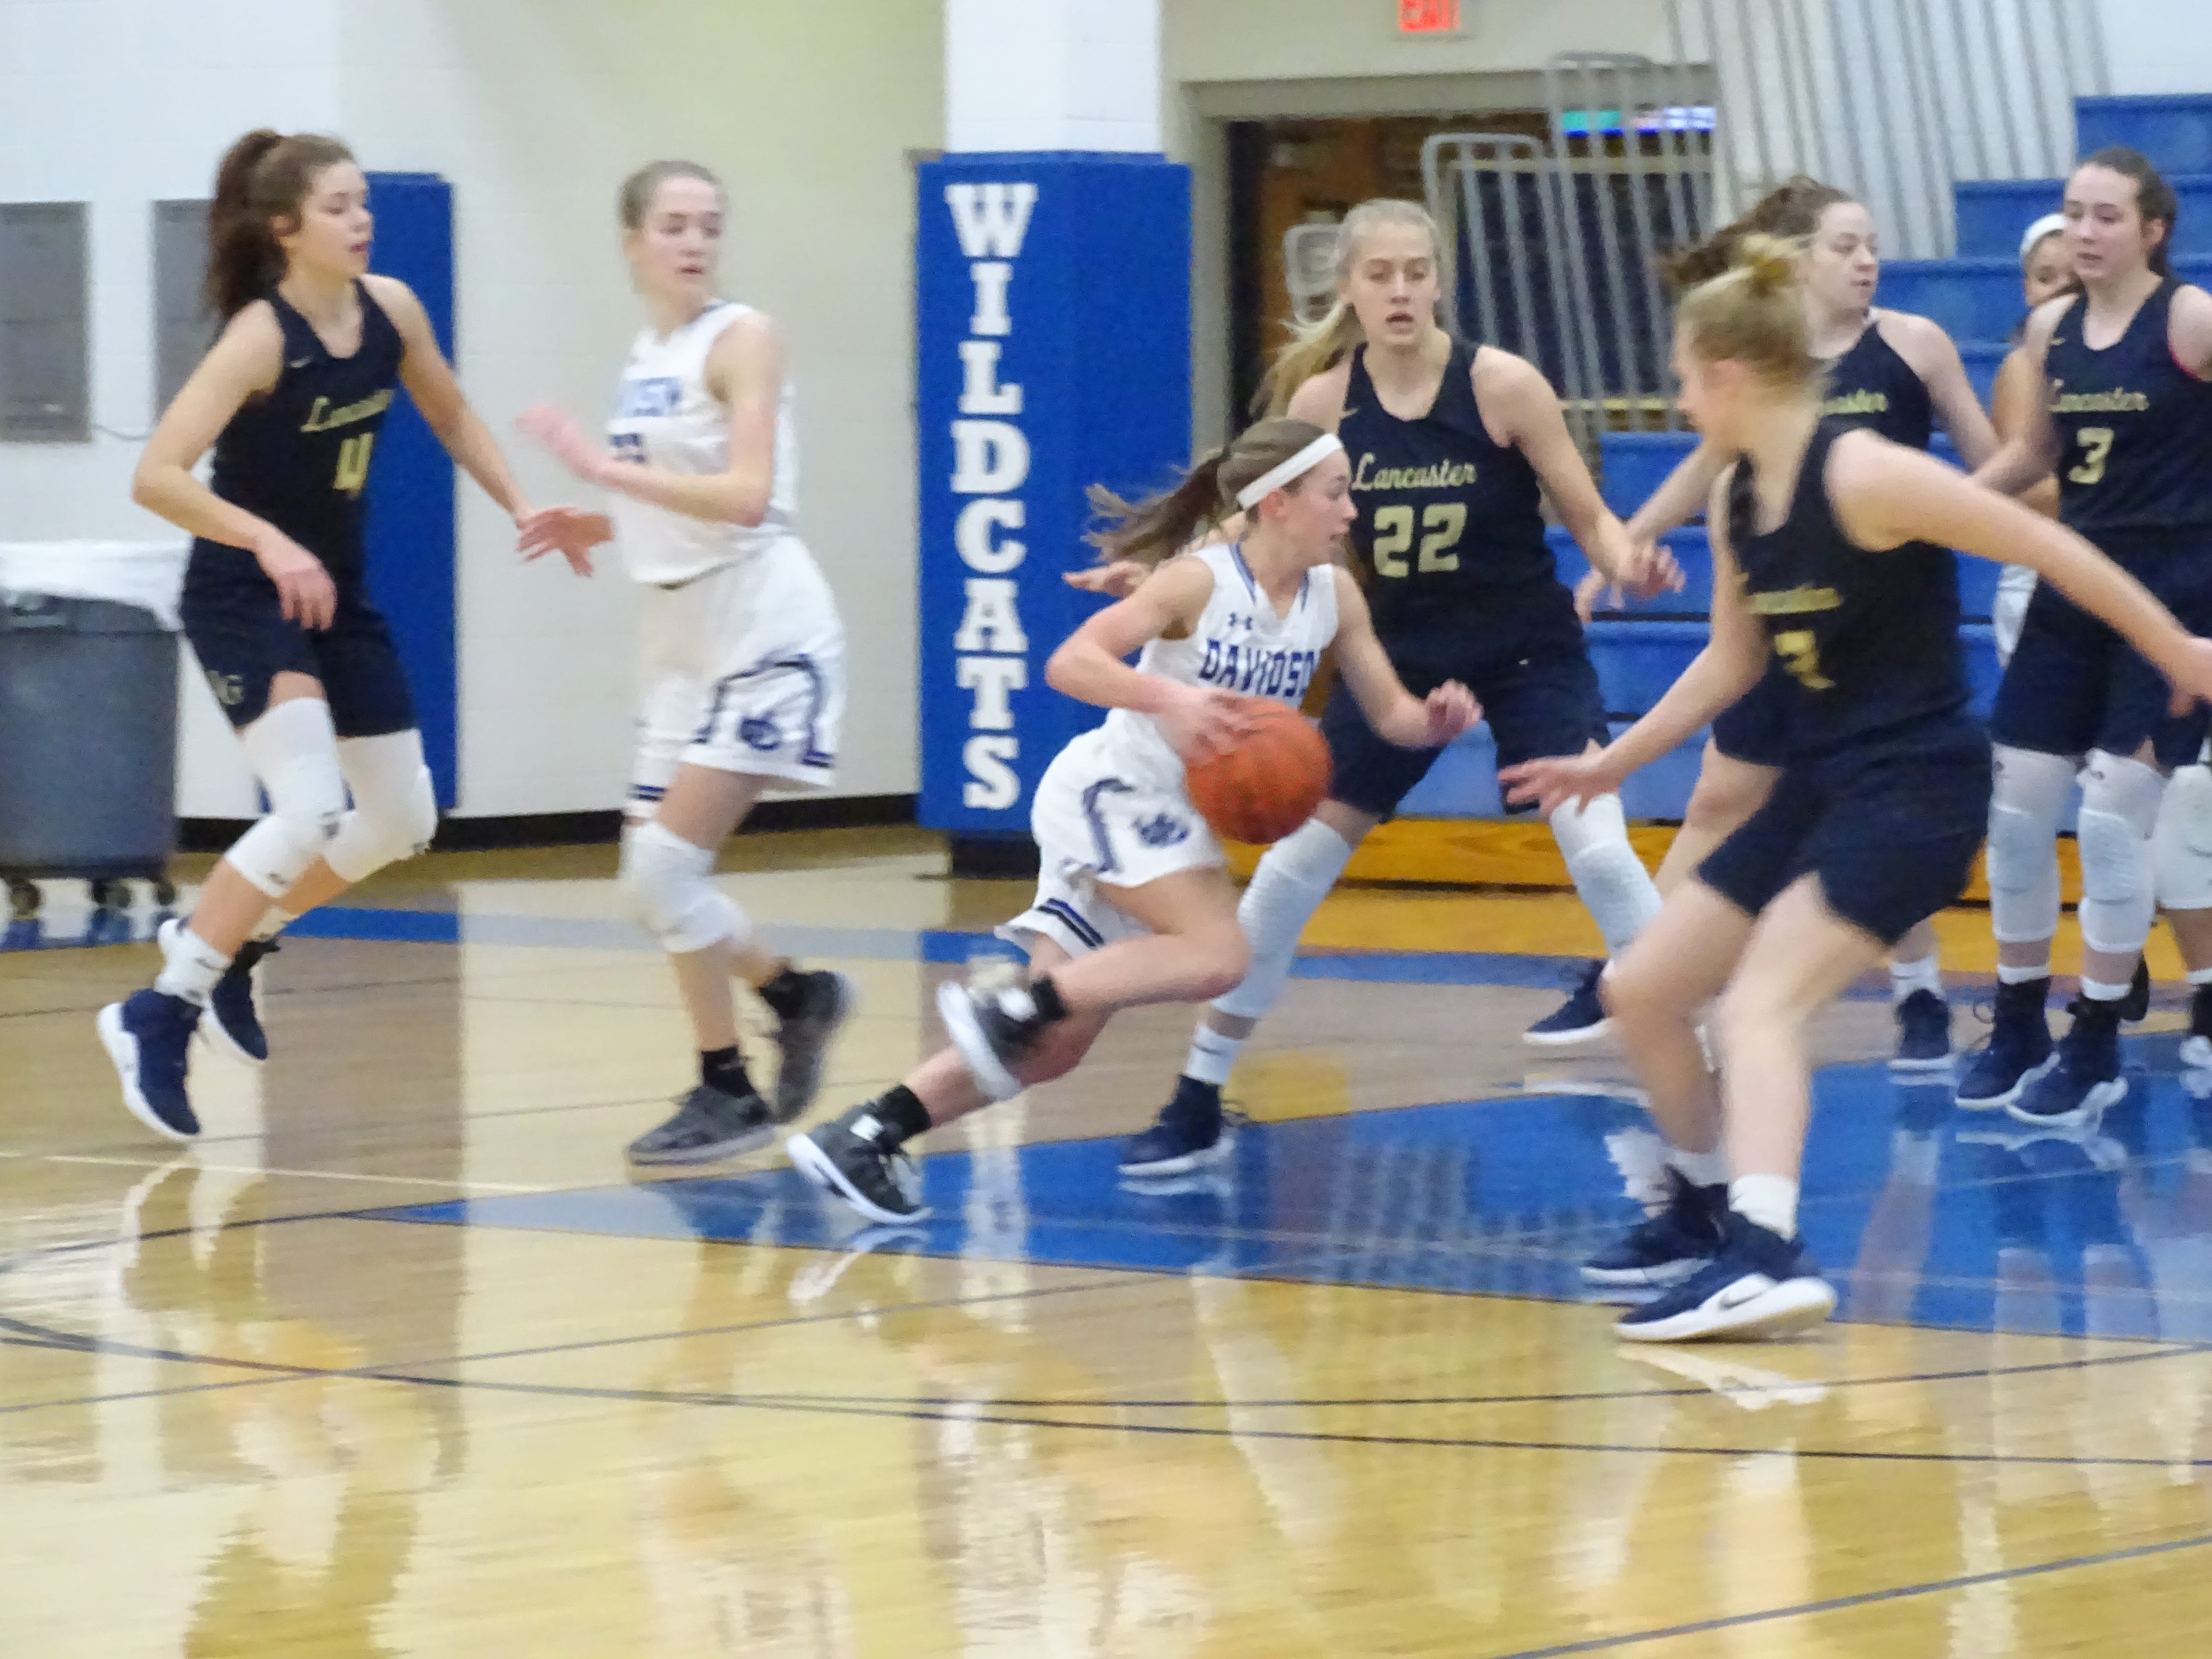 Lancaster fell, 48-30, in its Central District Division I tournament opener to Hilliard Davidson on Saturday.